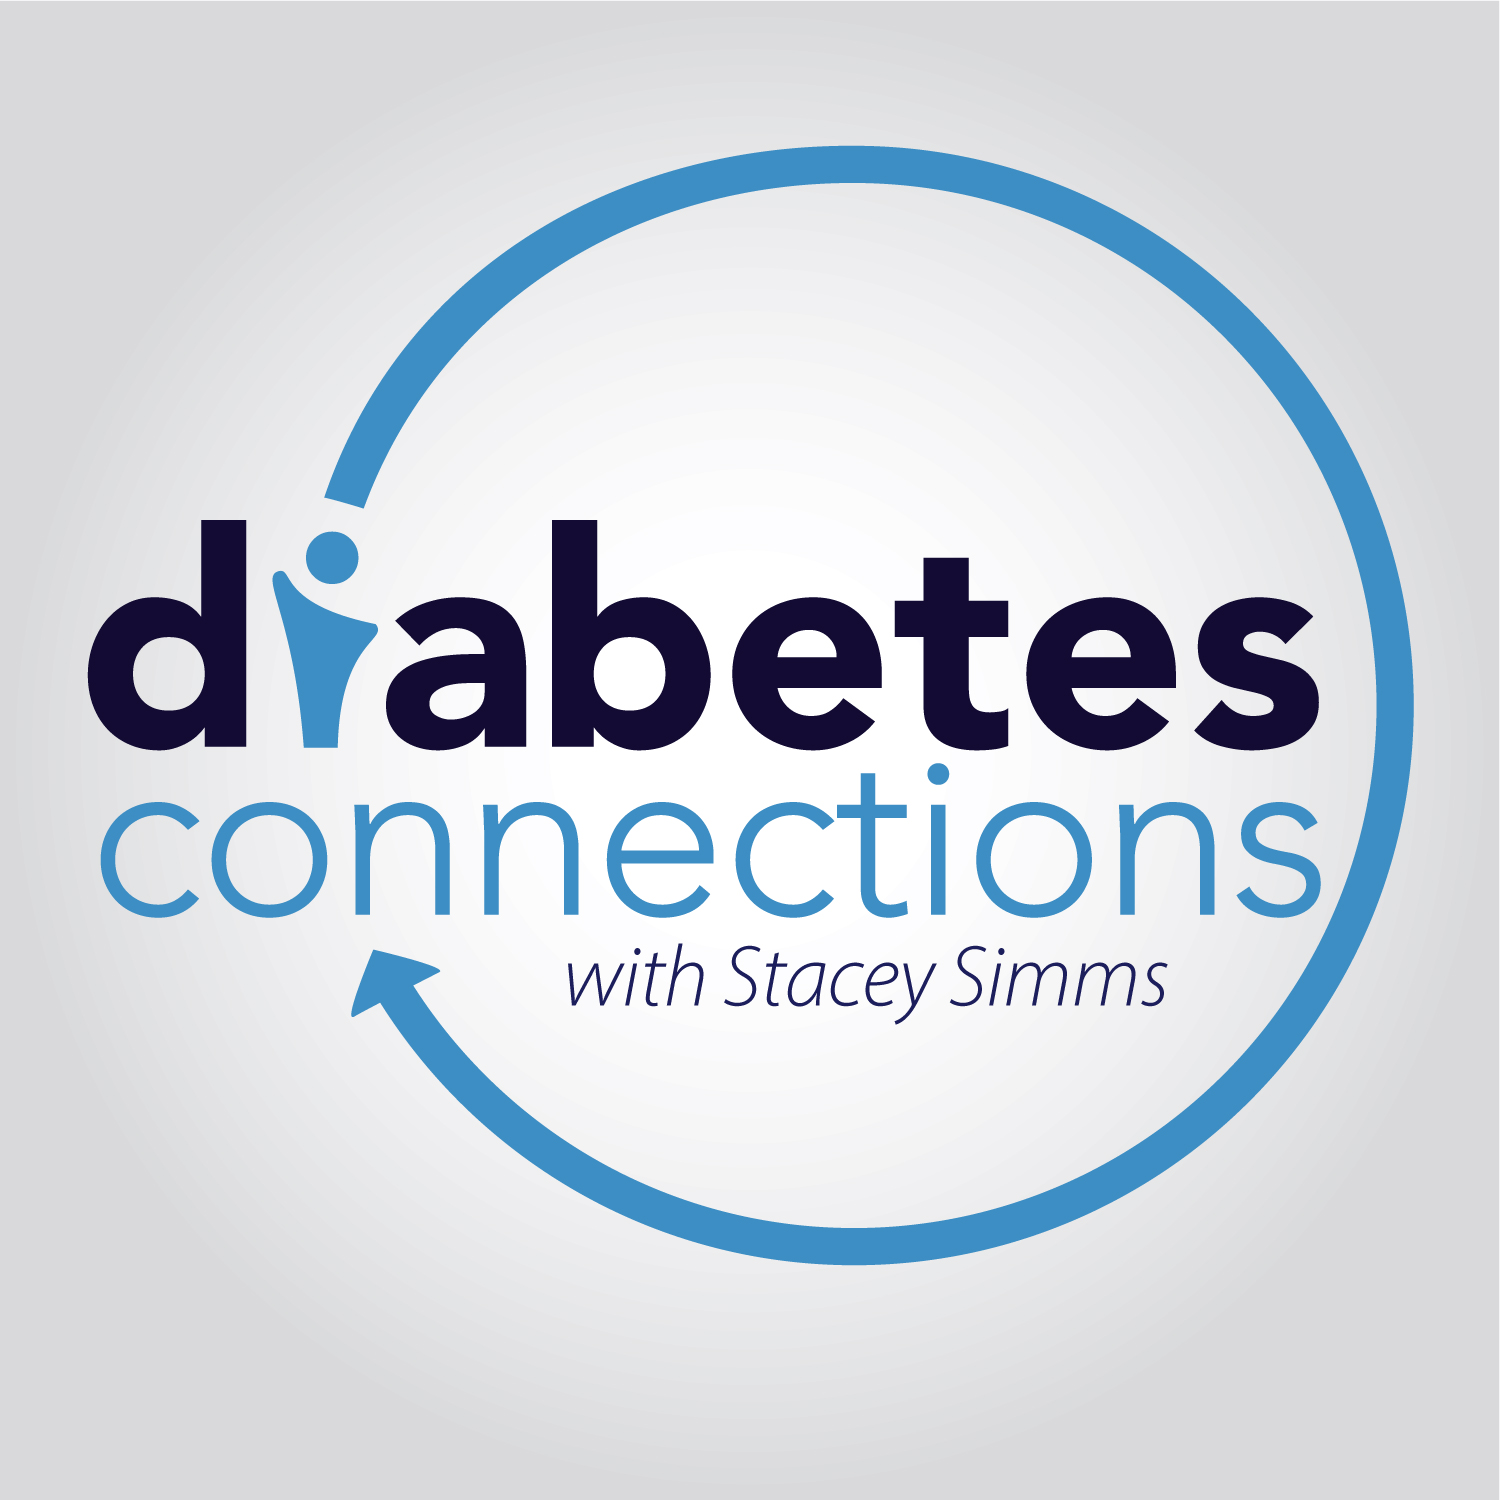 Diabetes Connections with Stacey Simms | Type 1 Diabetes